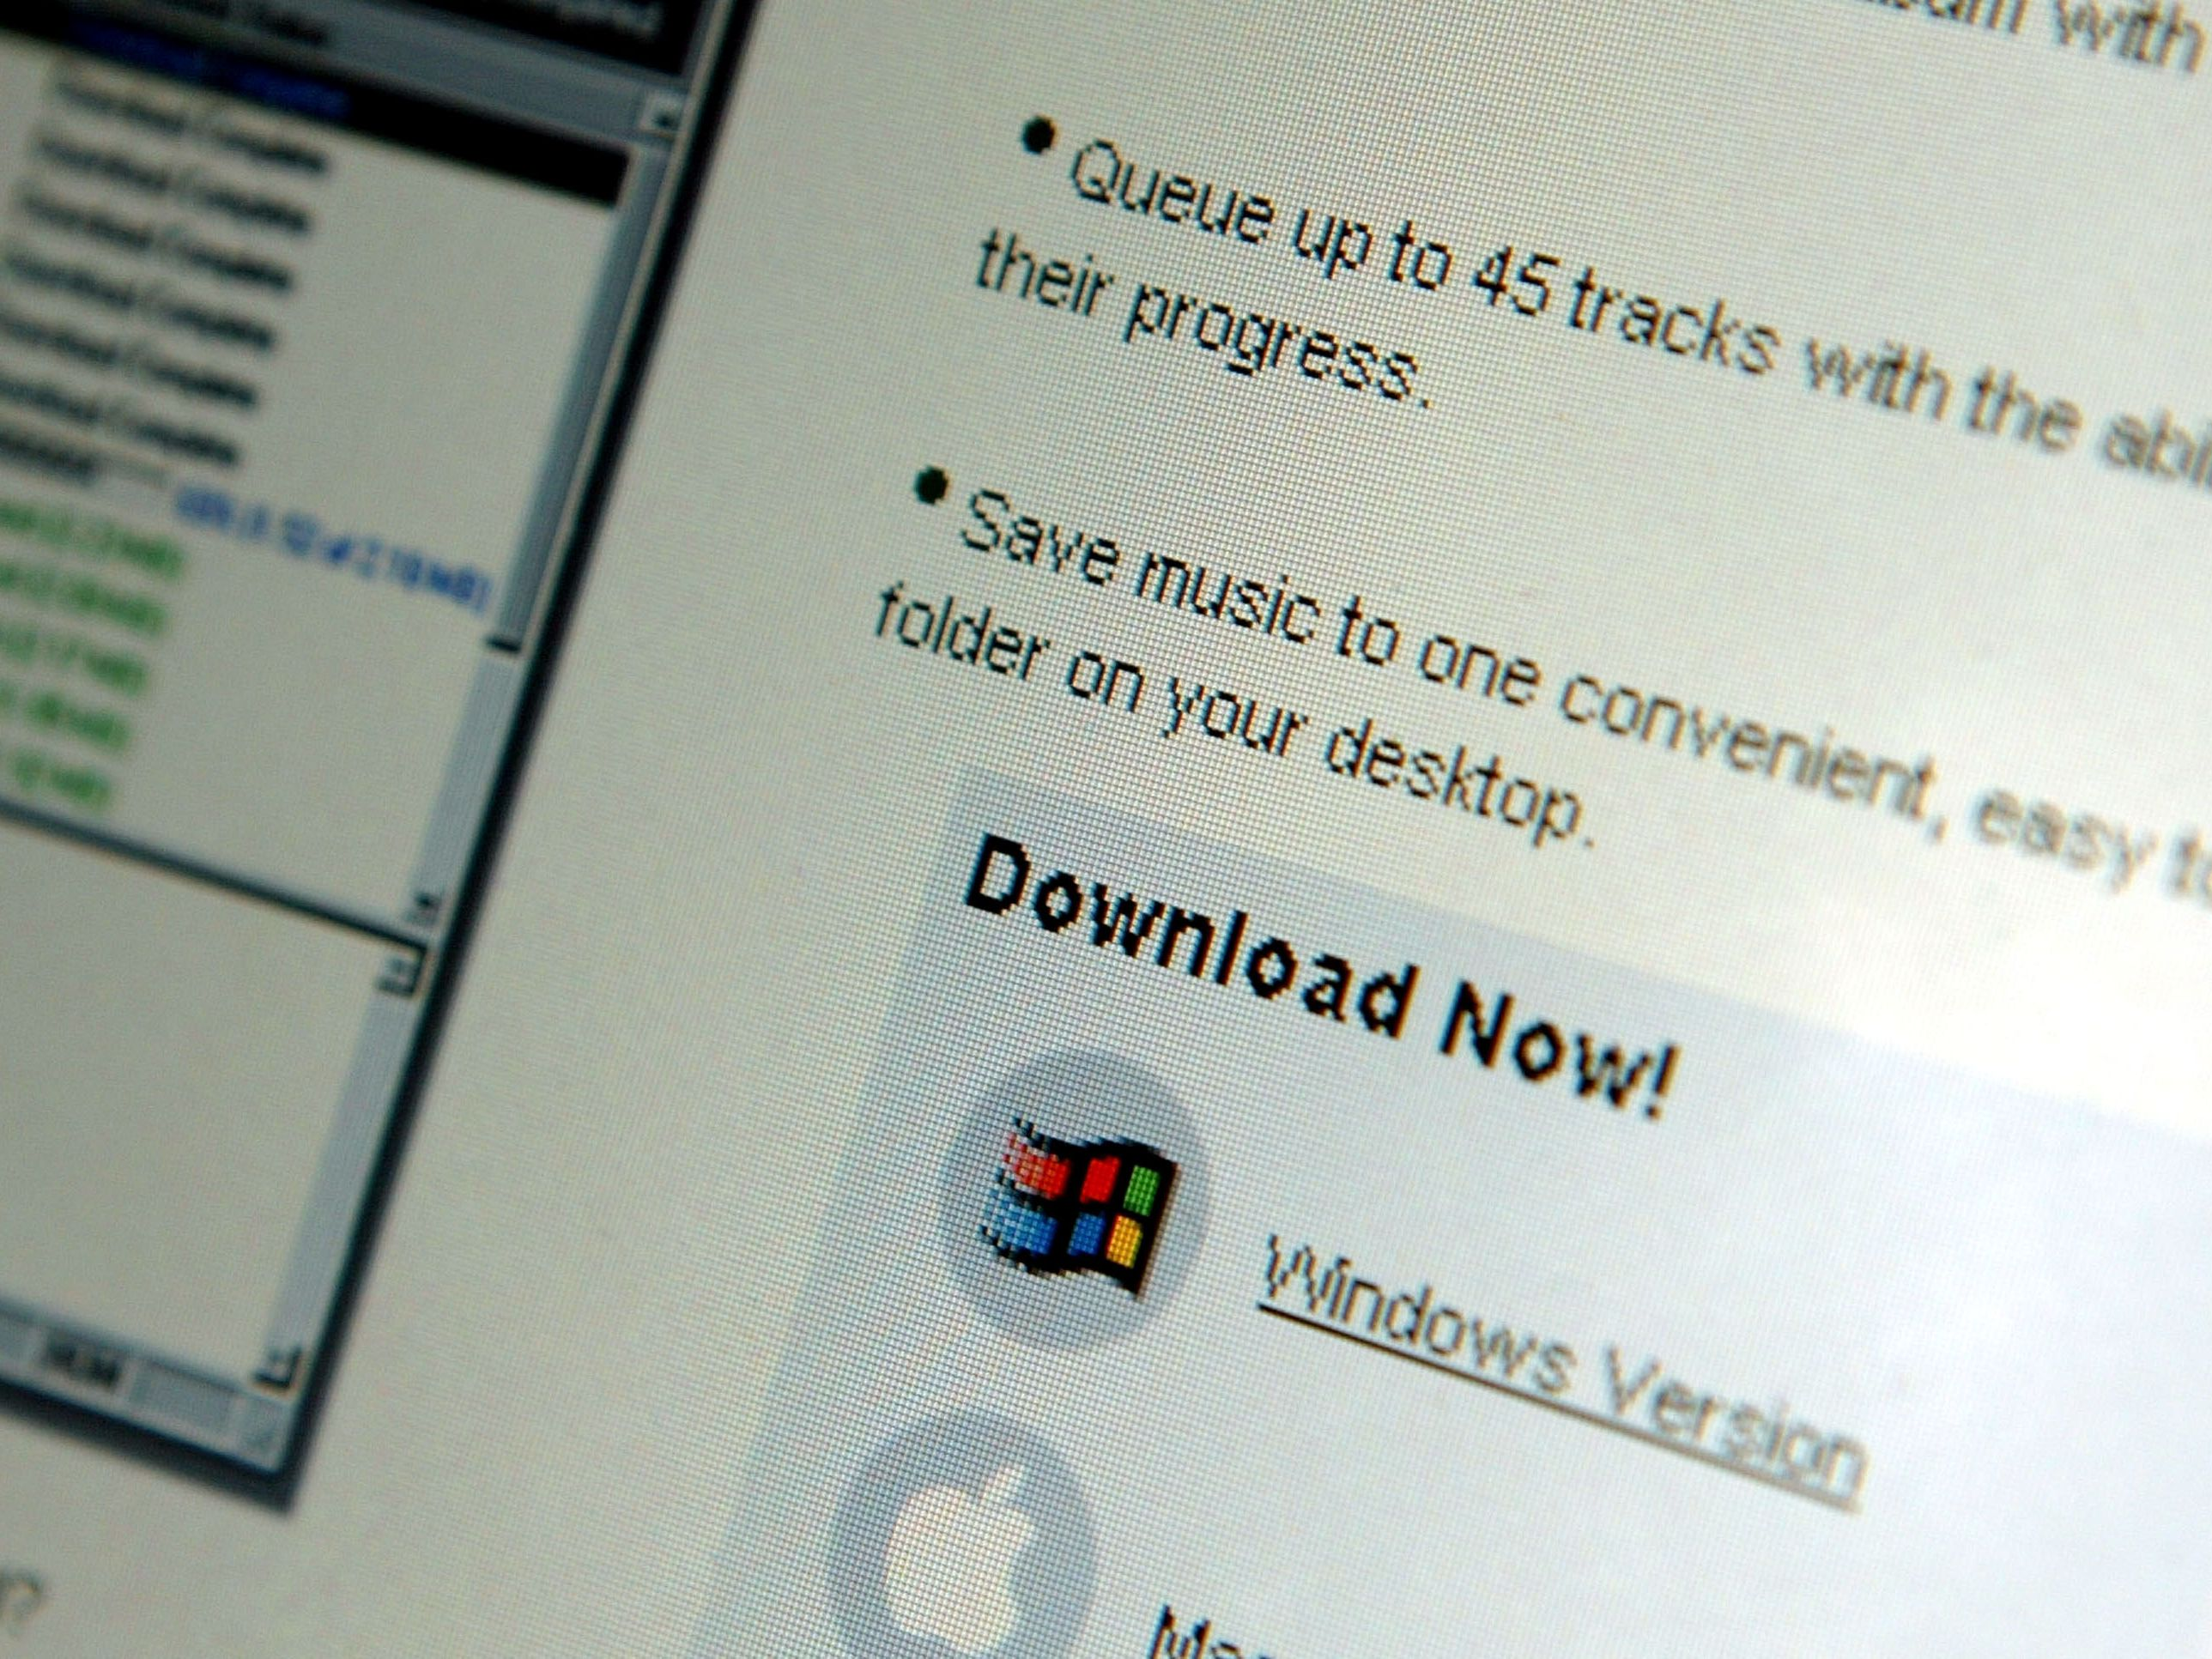 The Downloads Folder: What It Is and How It Works